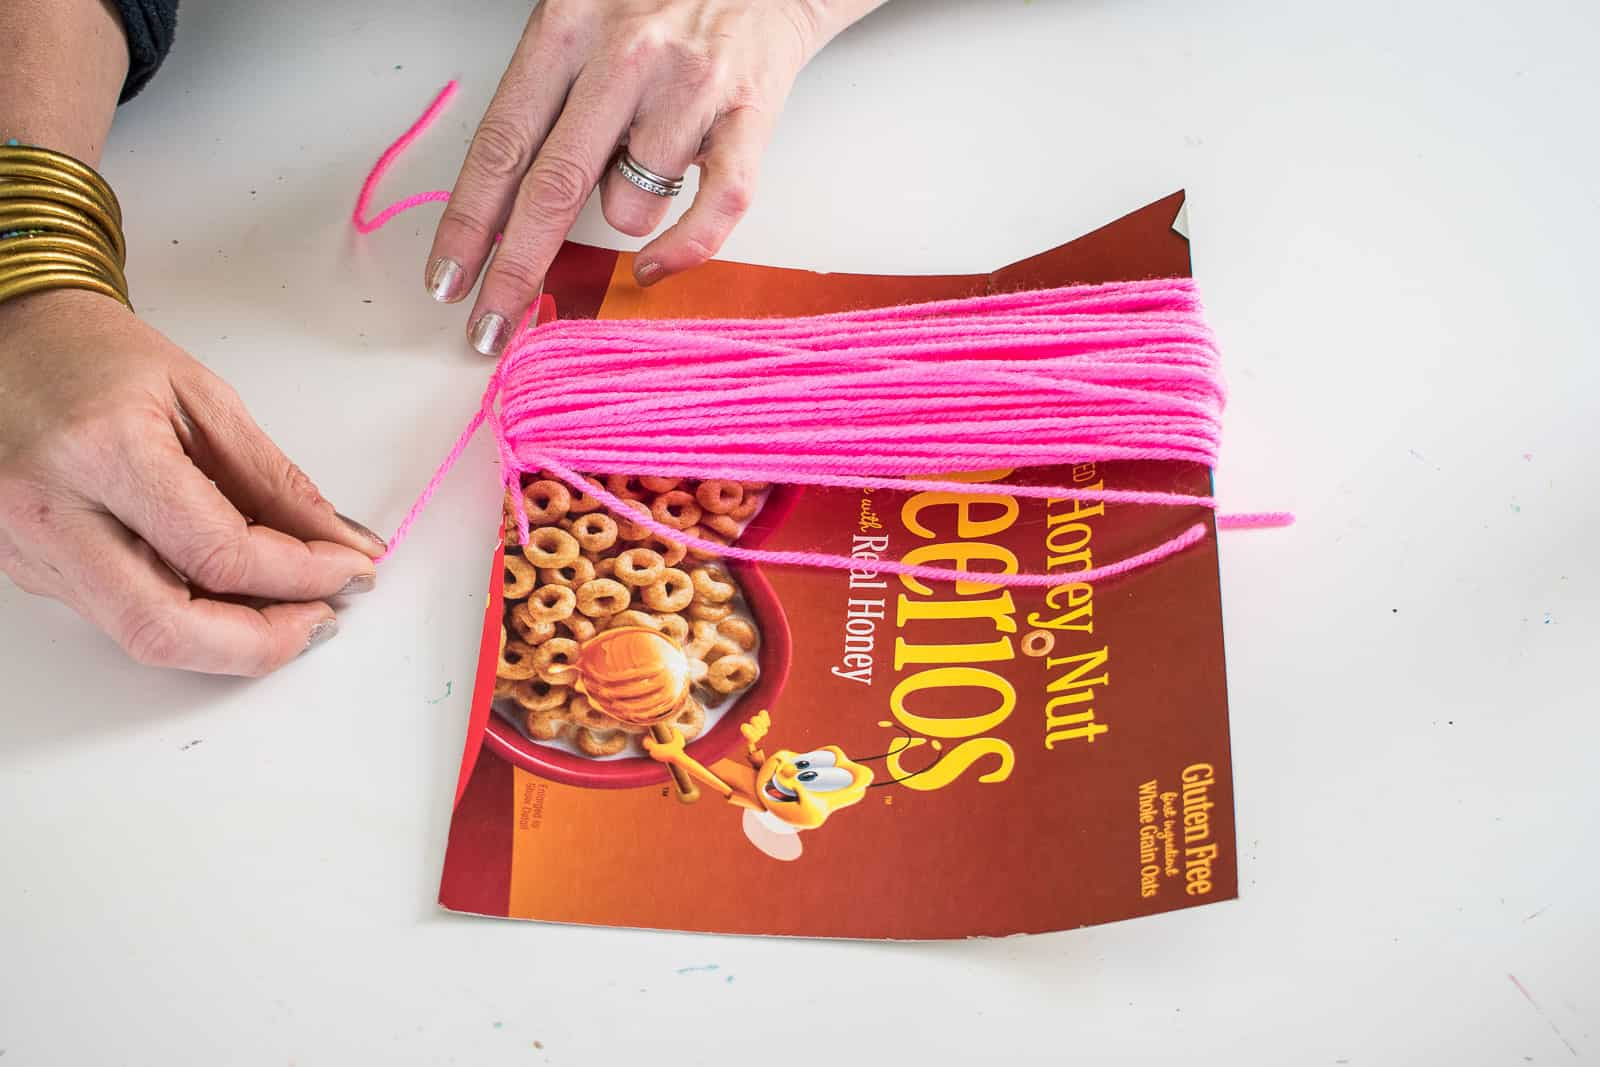 tie off the loops of yarn